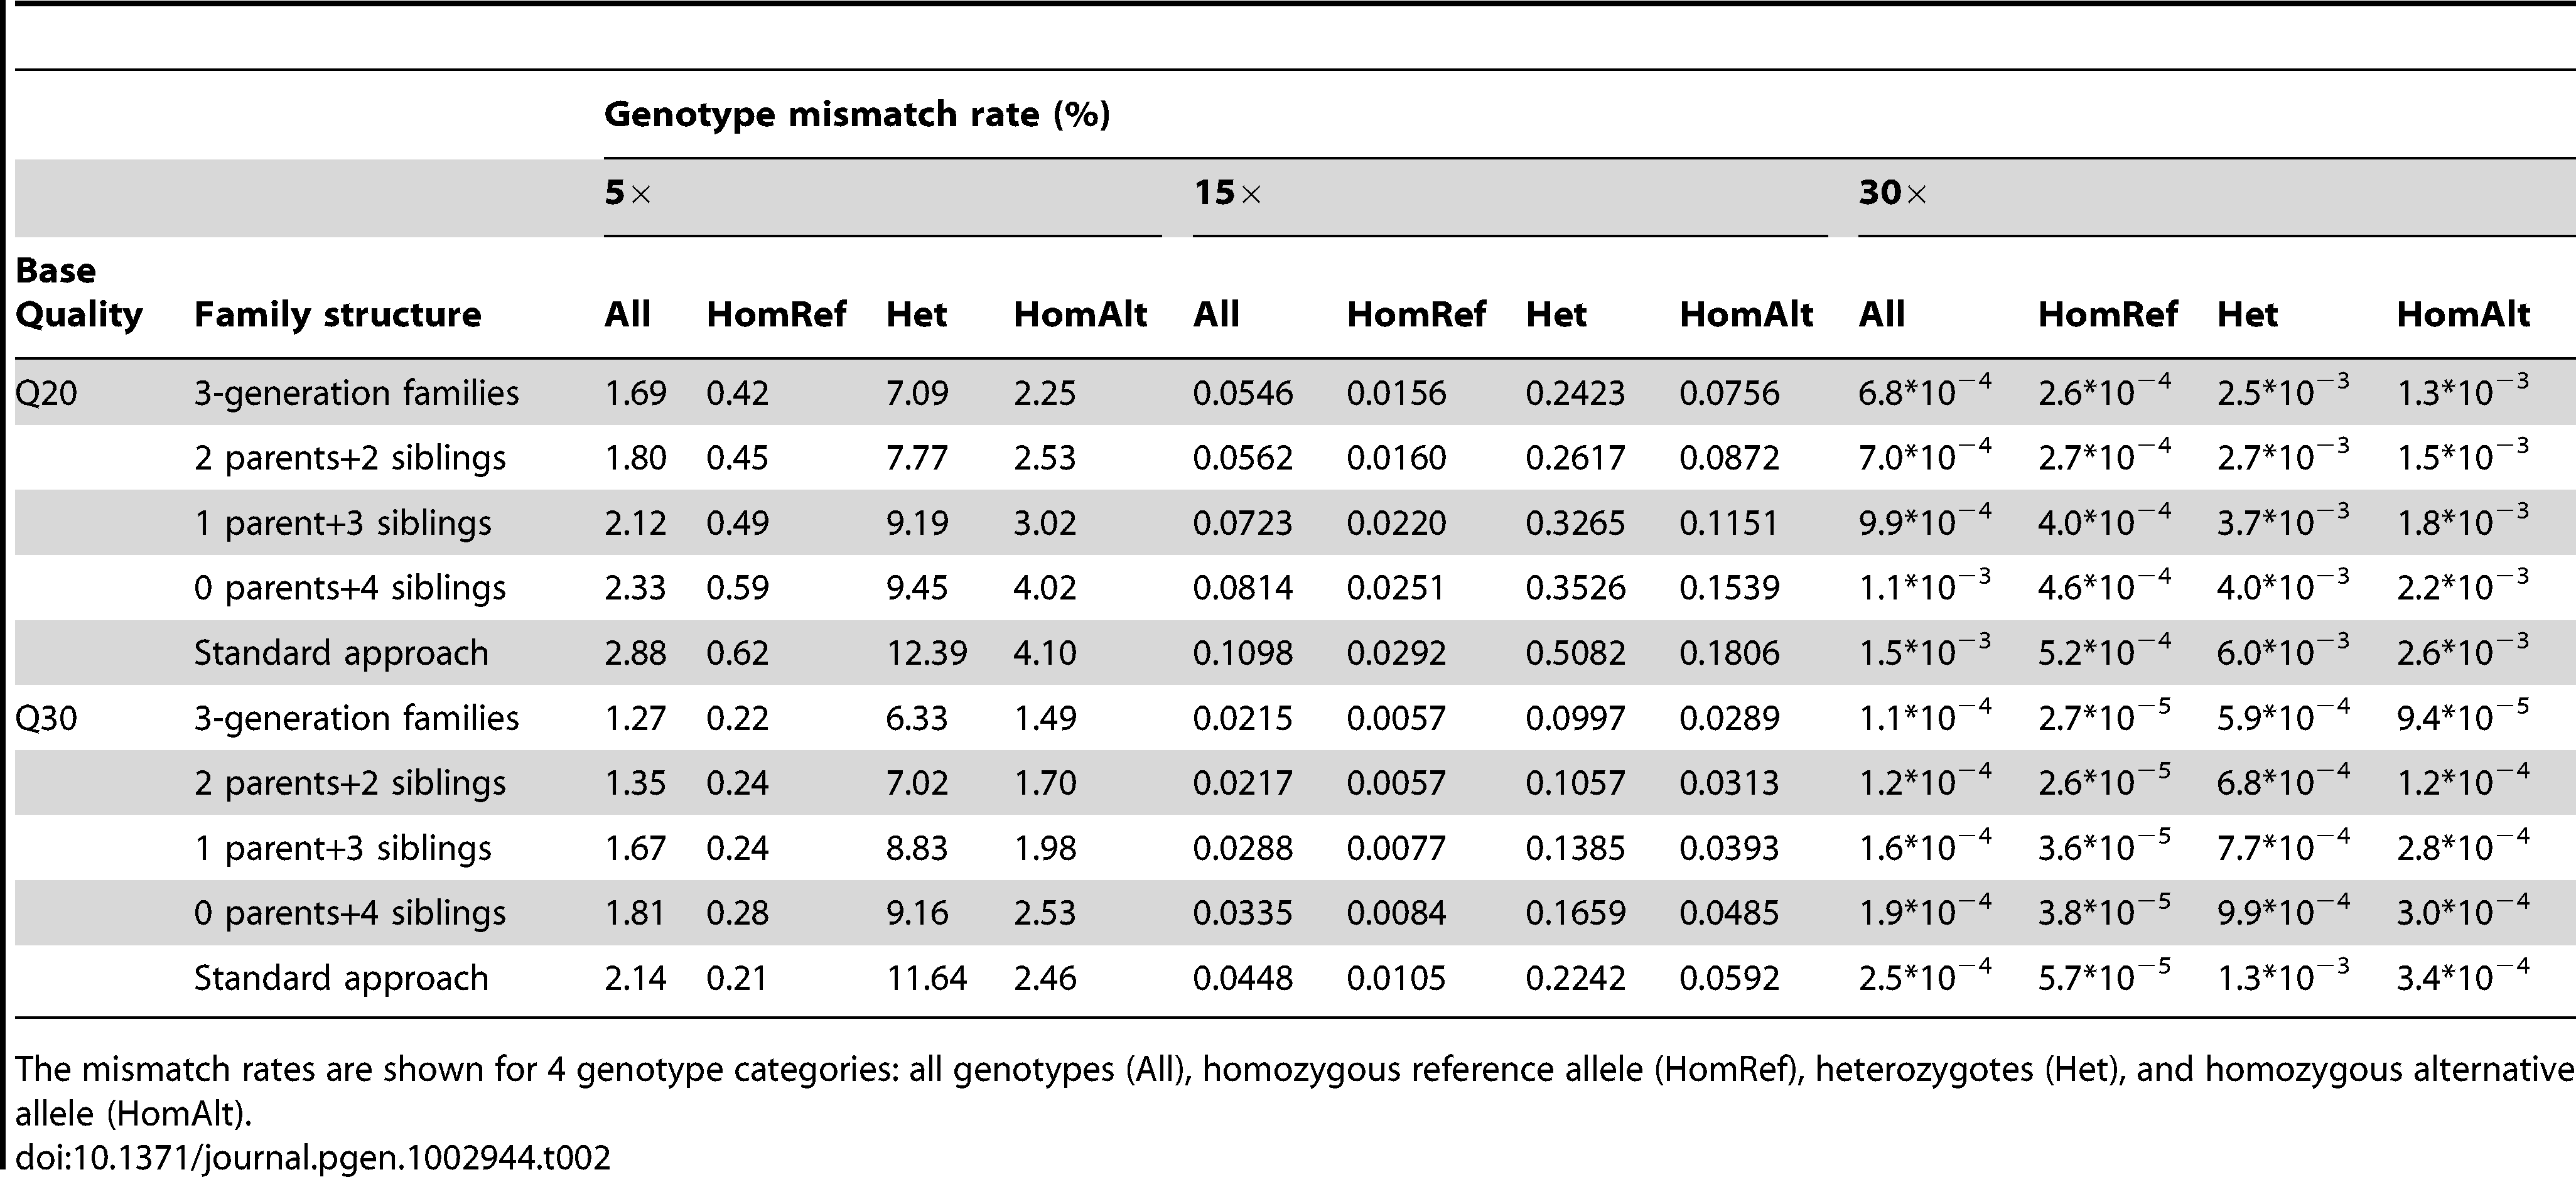 Genotype mismatch rates (%) for different family structures with sequencing coverage of 5×, 15×, and 30× and input bases with Phred-scaled quality Q20 (1% error rate) or Q30 (0.1% error rate) without mapping error.